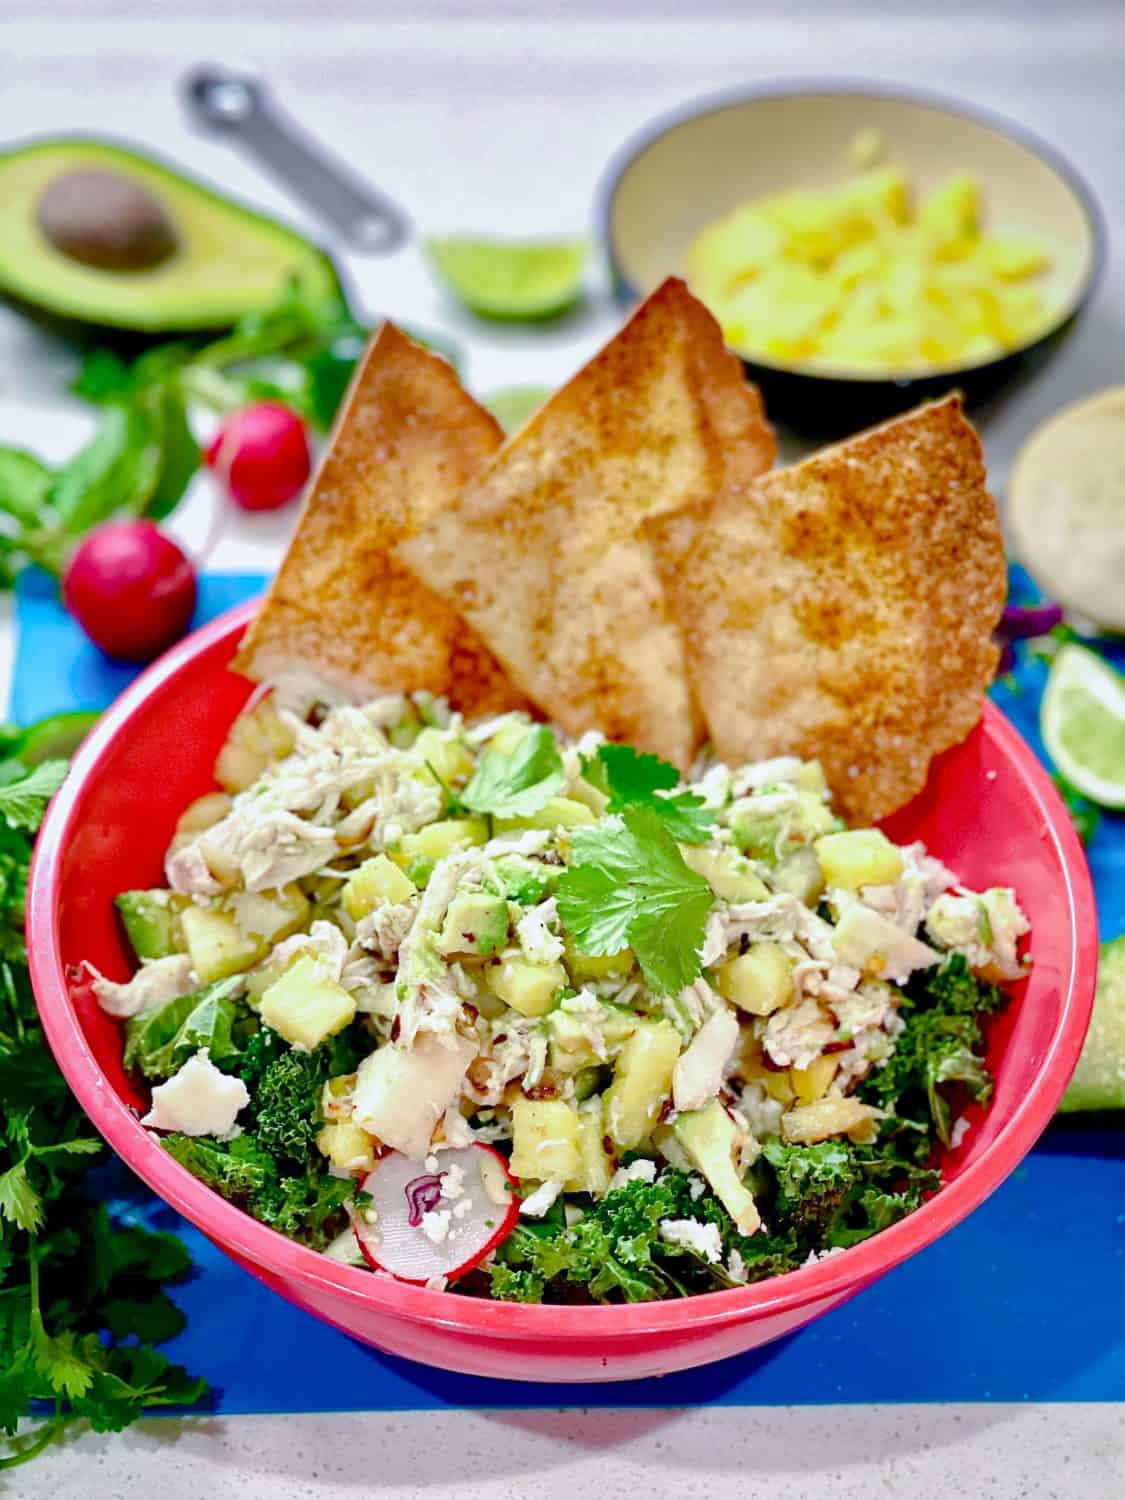 Tropical Chicken Tostada Salad in a bowl garnished with flour tortilla chips